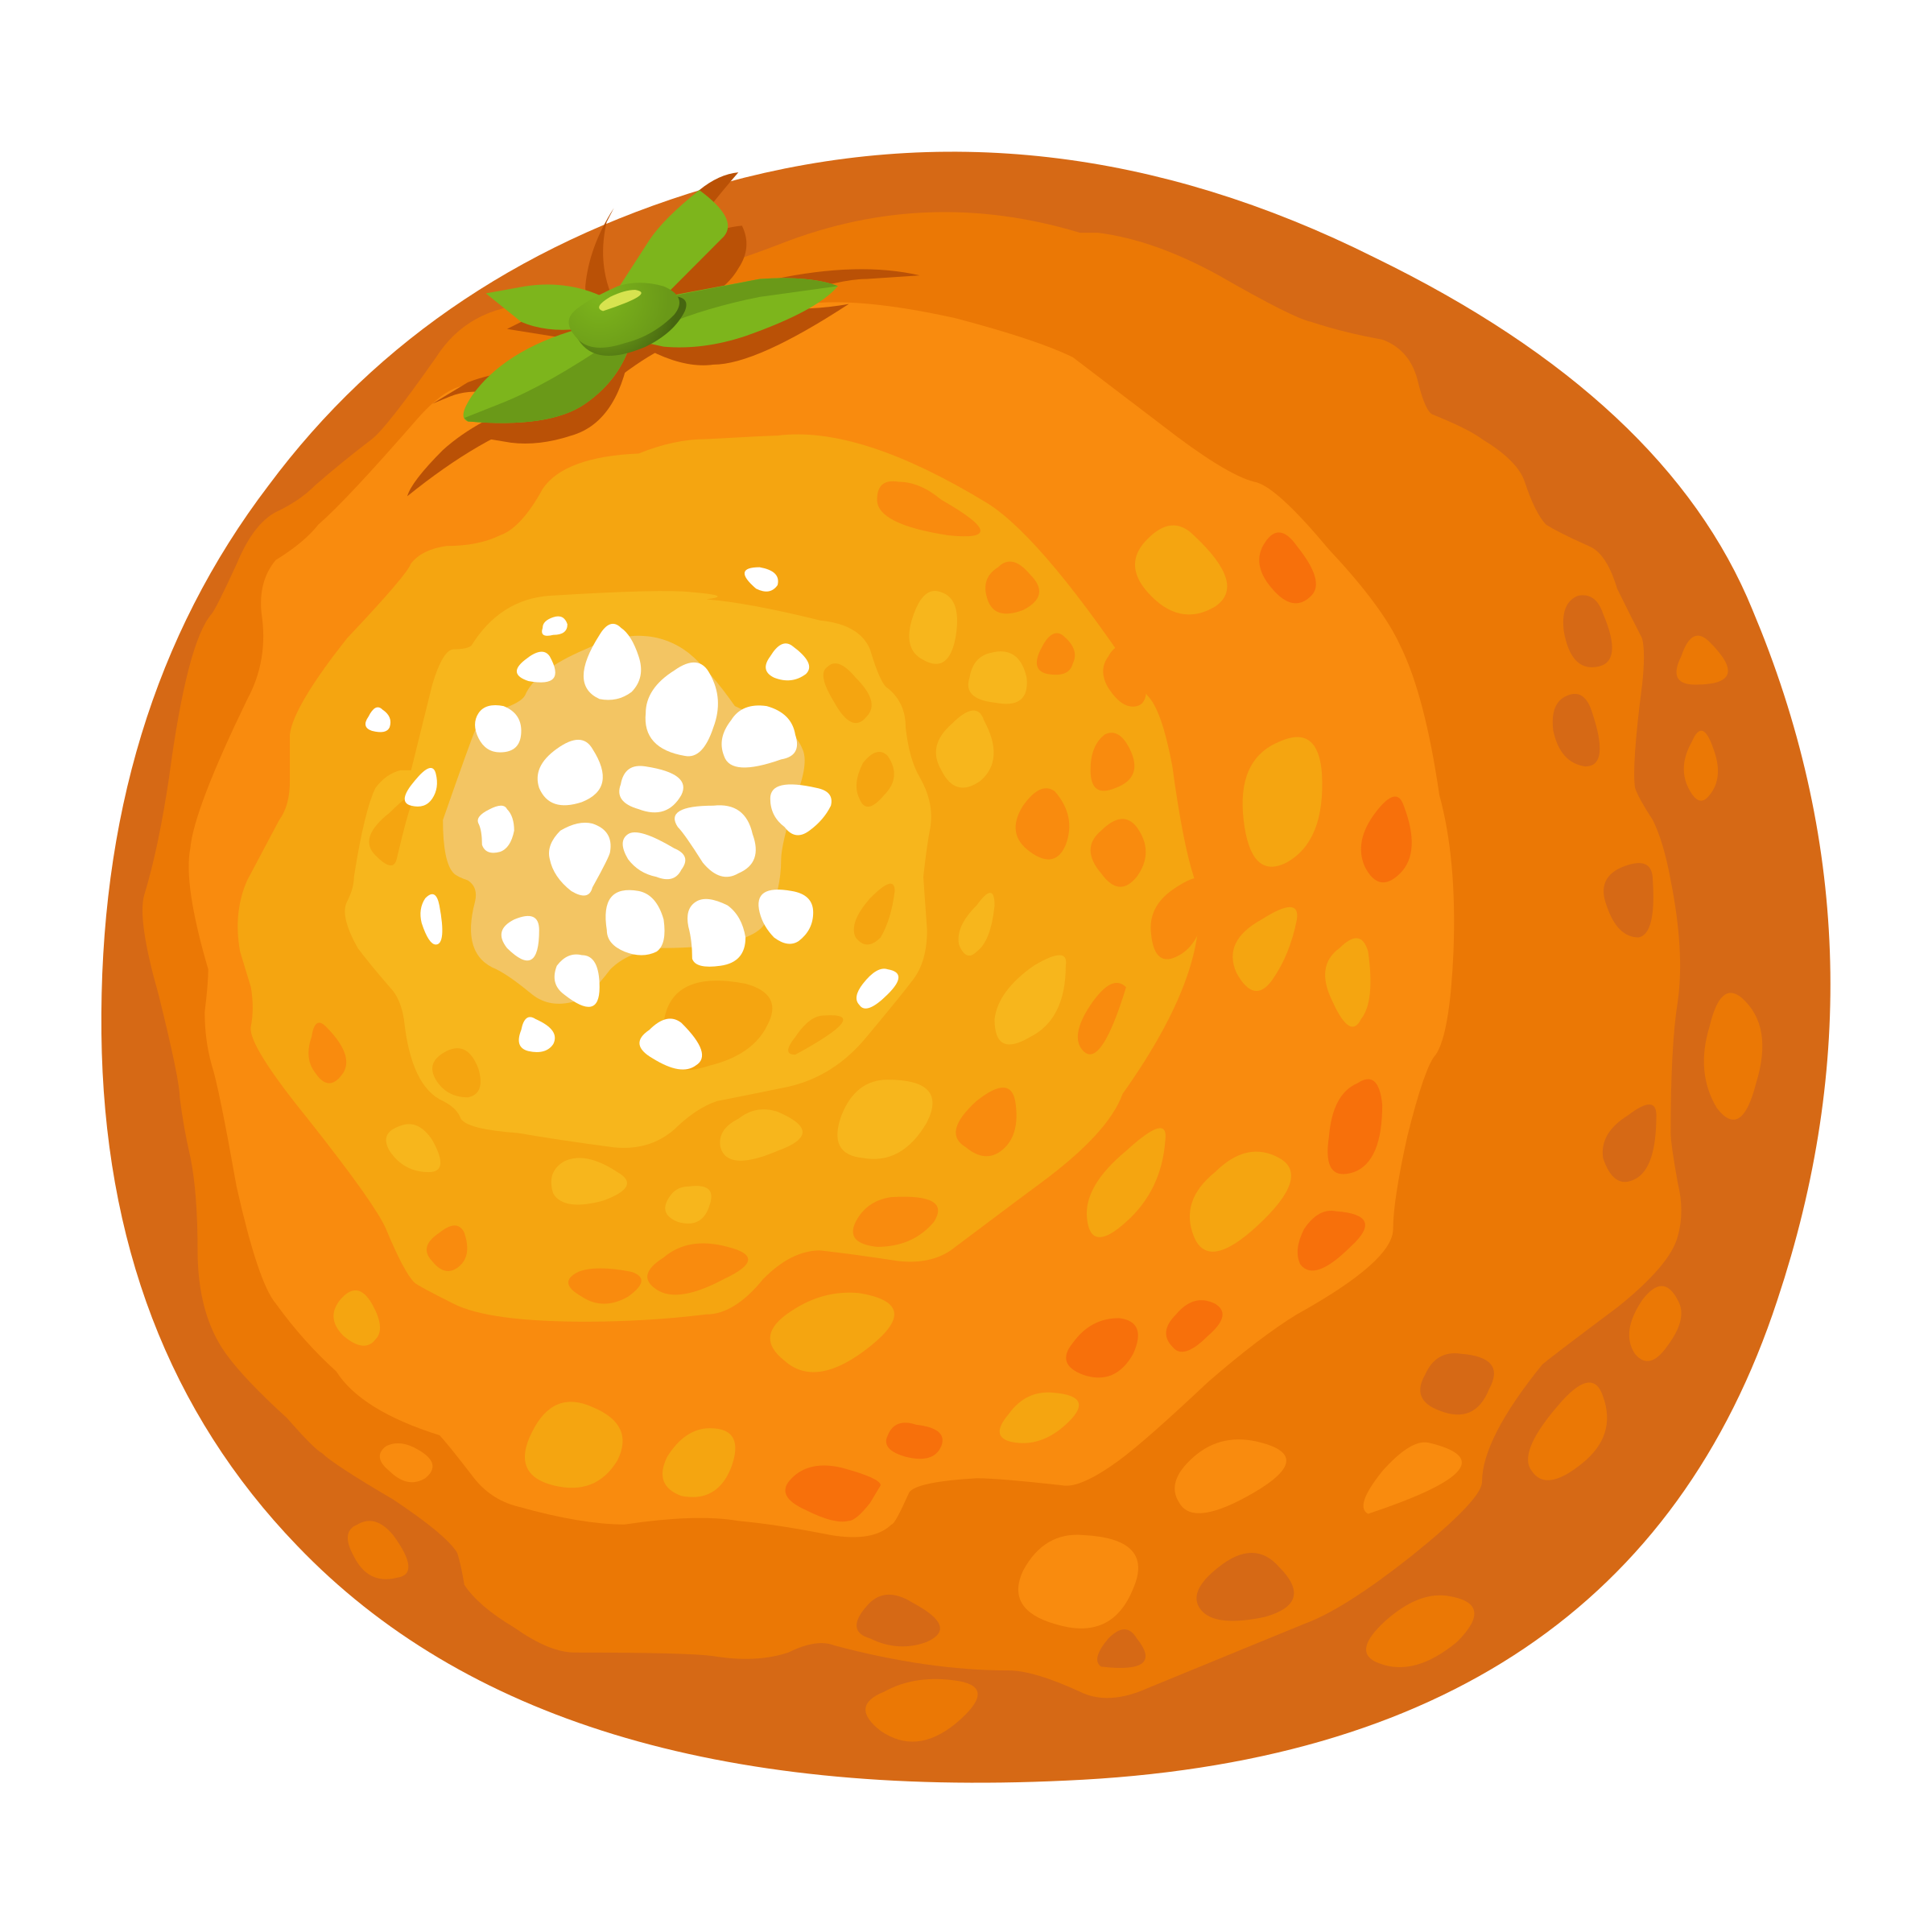 Food Orange by glitch